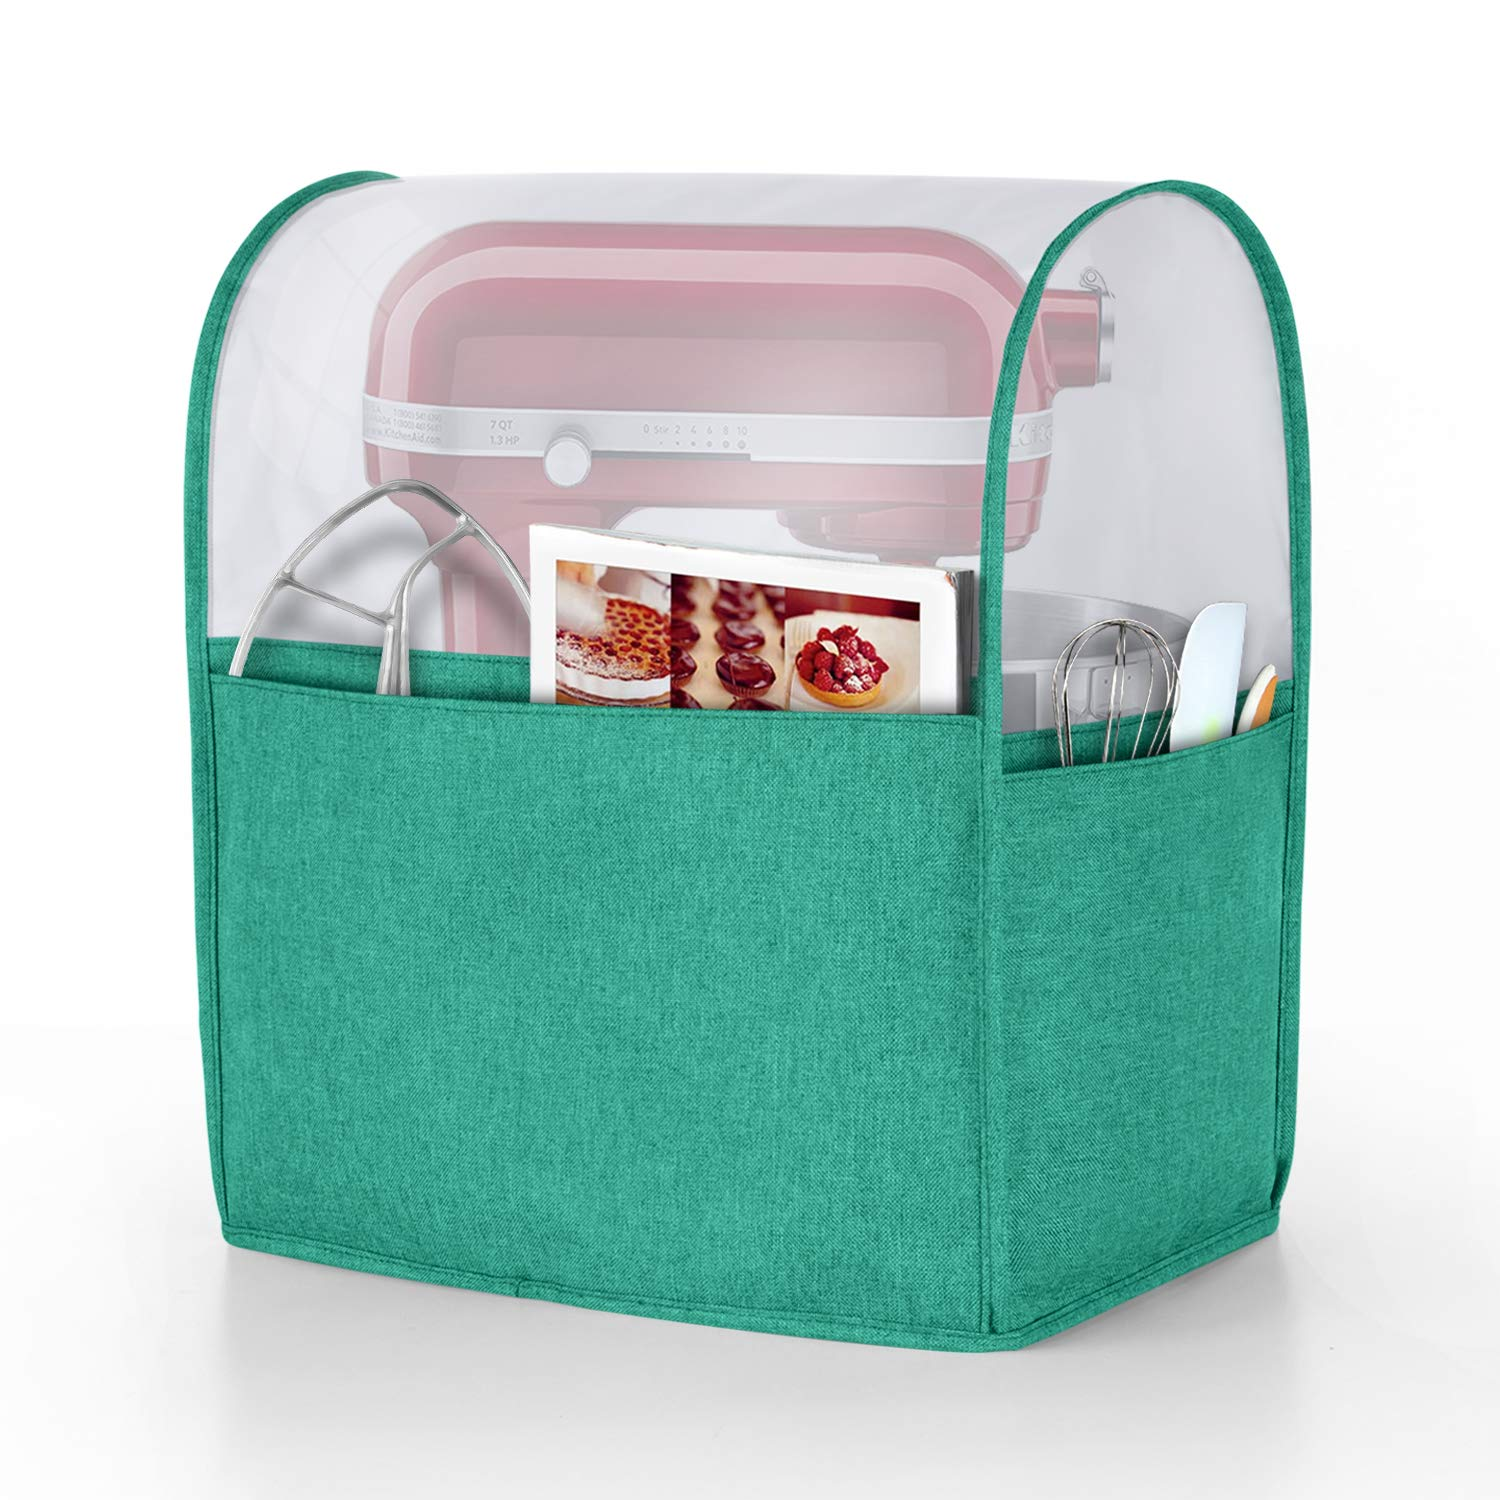 Luxja Dust Cover for 6-8 Quart KitchenAid Mixers, Cover (Clear Top) with Pockets for KitchenAid Mixers and Extra Accessories (Compatible with All 6-8 Quart KitchenAid Mixers), Green (Patented Design)